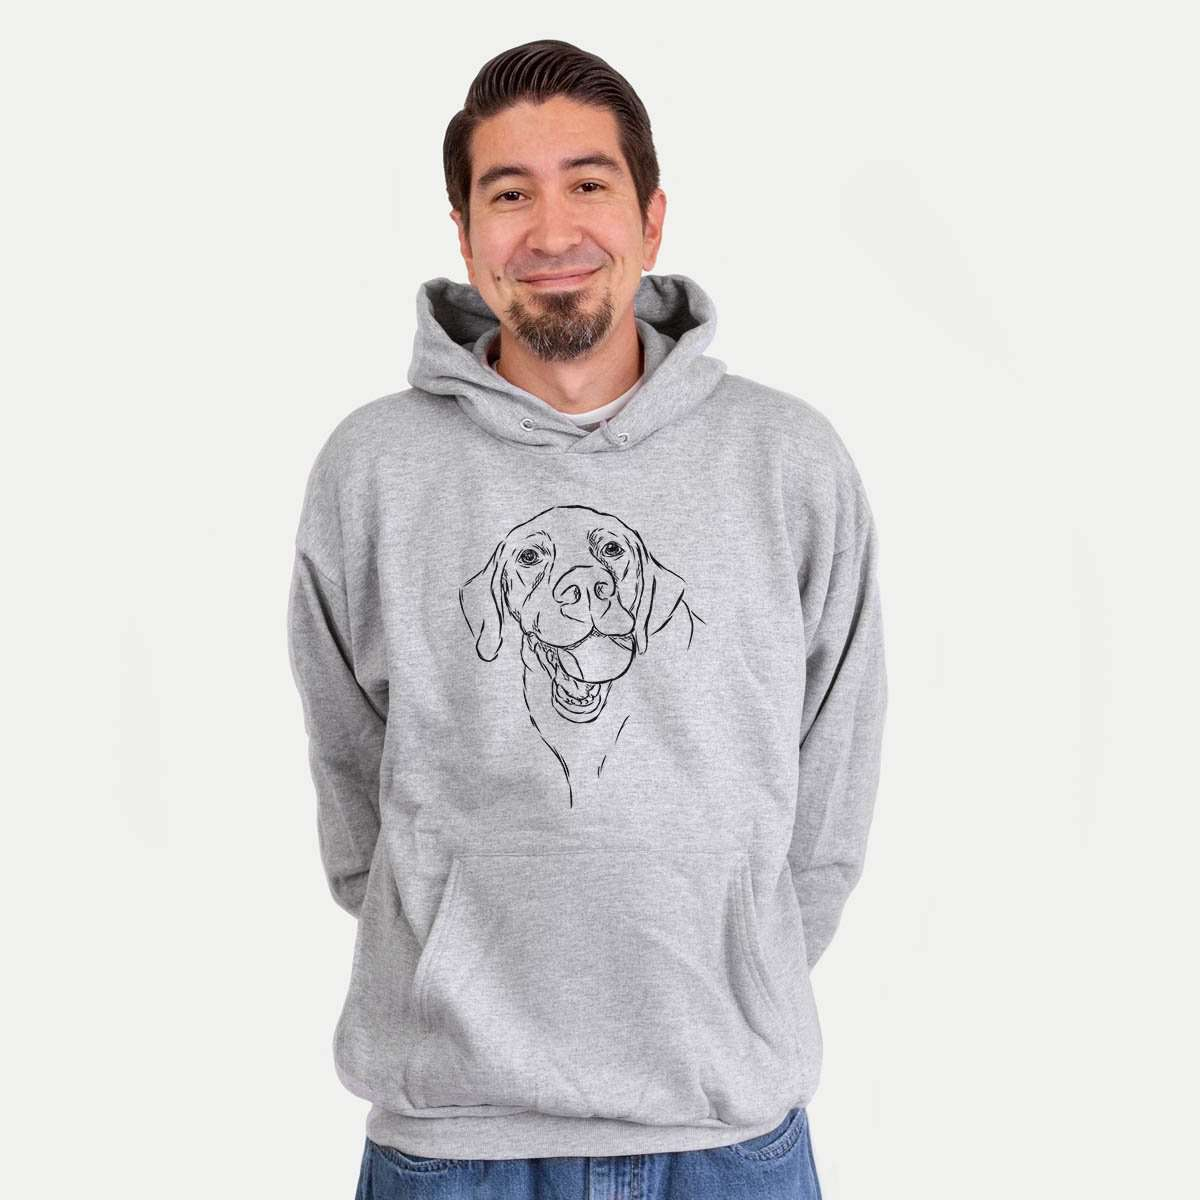 Bailey the Labrador Retriever - Mens Hooded Sweatshirt